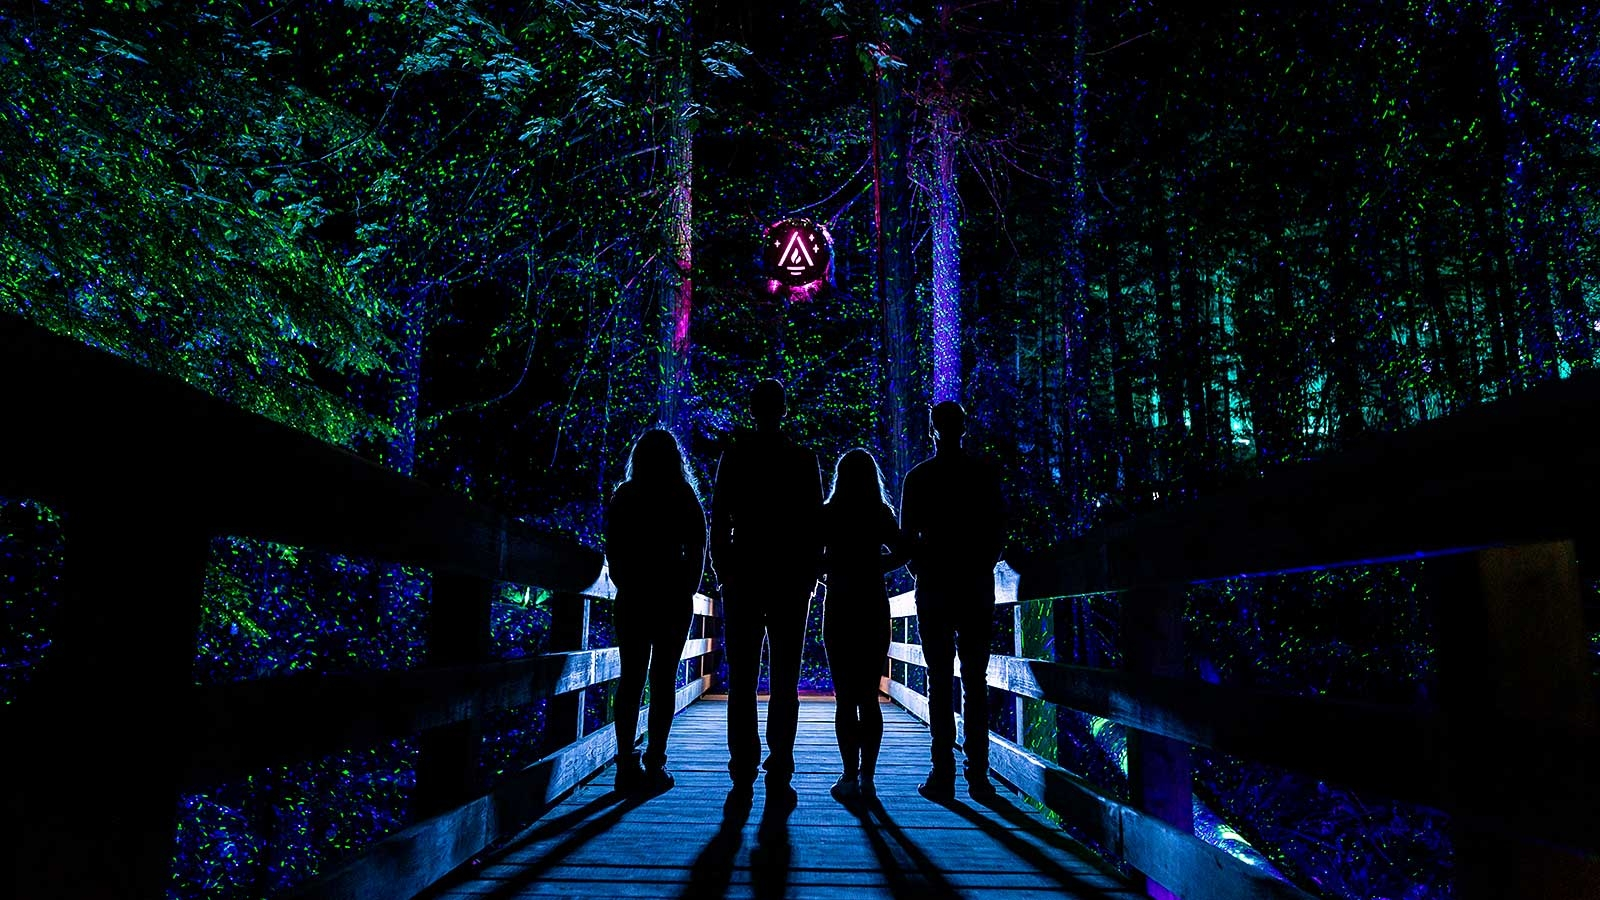 A family crossing a bridge in the dark through an illuminated forrest in Whistler